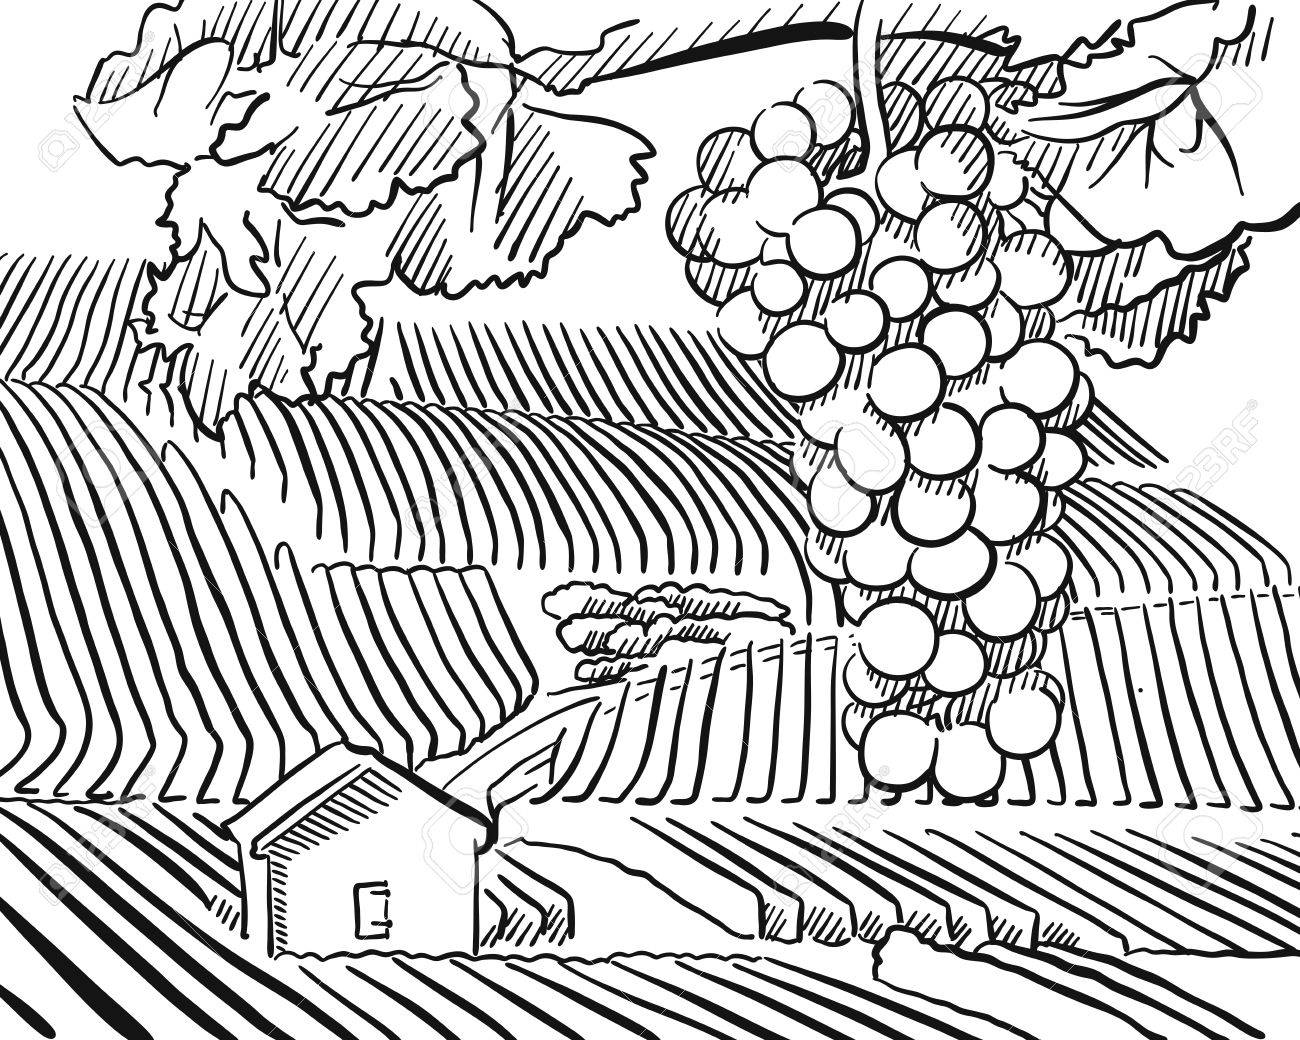 1300x1040 Vineyard Hills With Hanging Grapes In Foreground, Vector Sketched